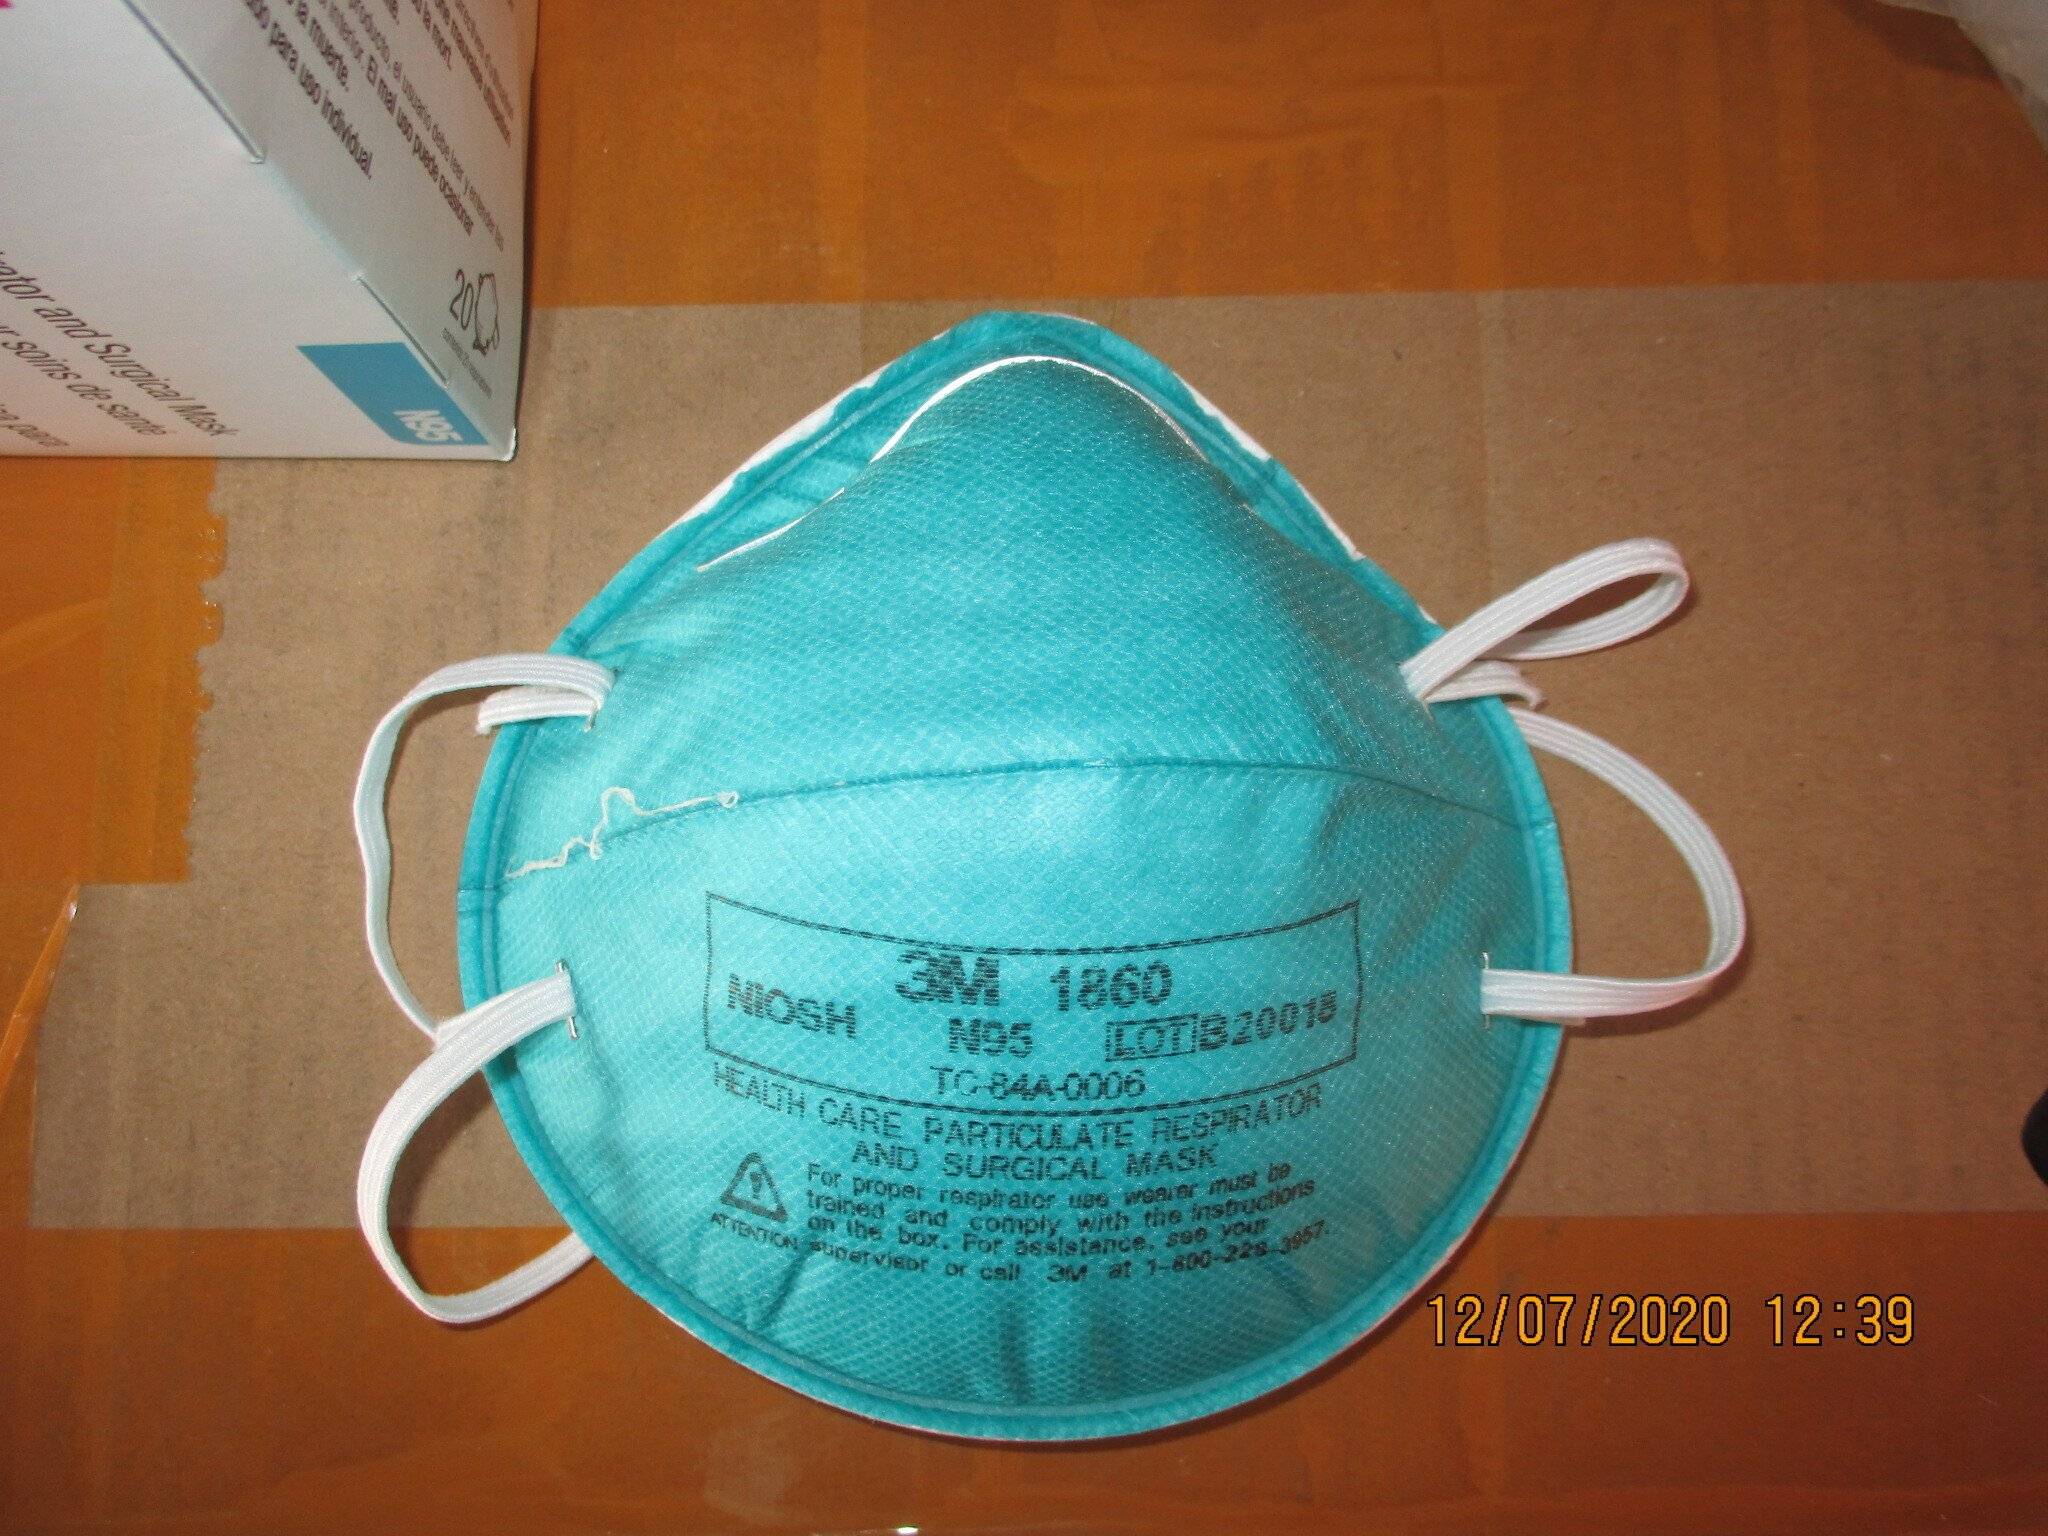 Government investigating massive counterfeit N95 mask scam